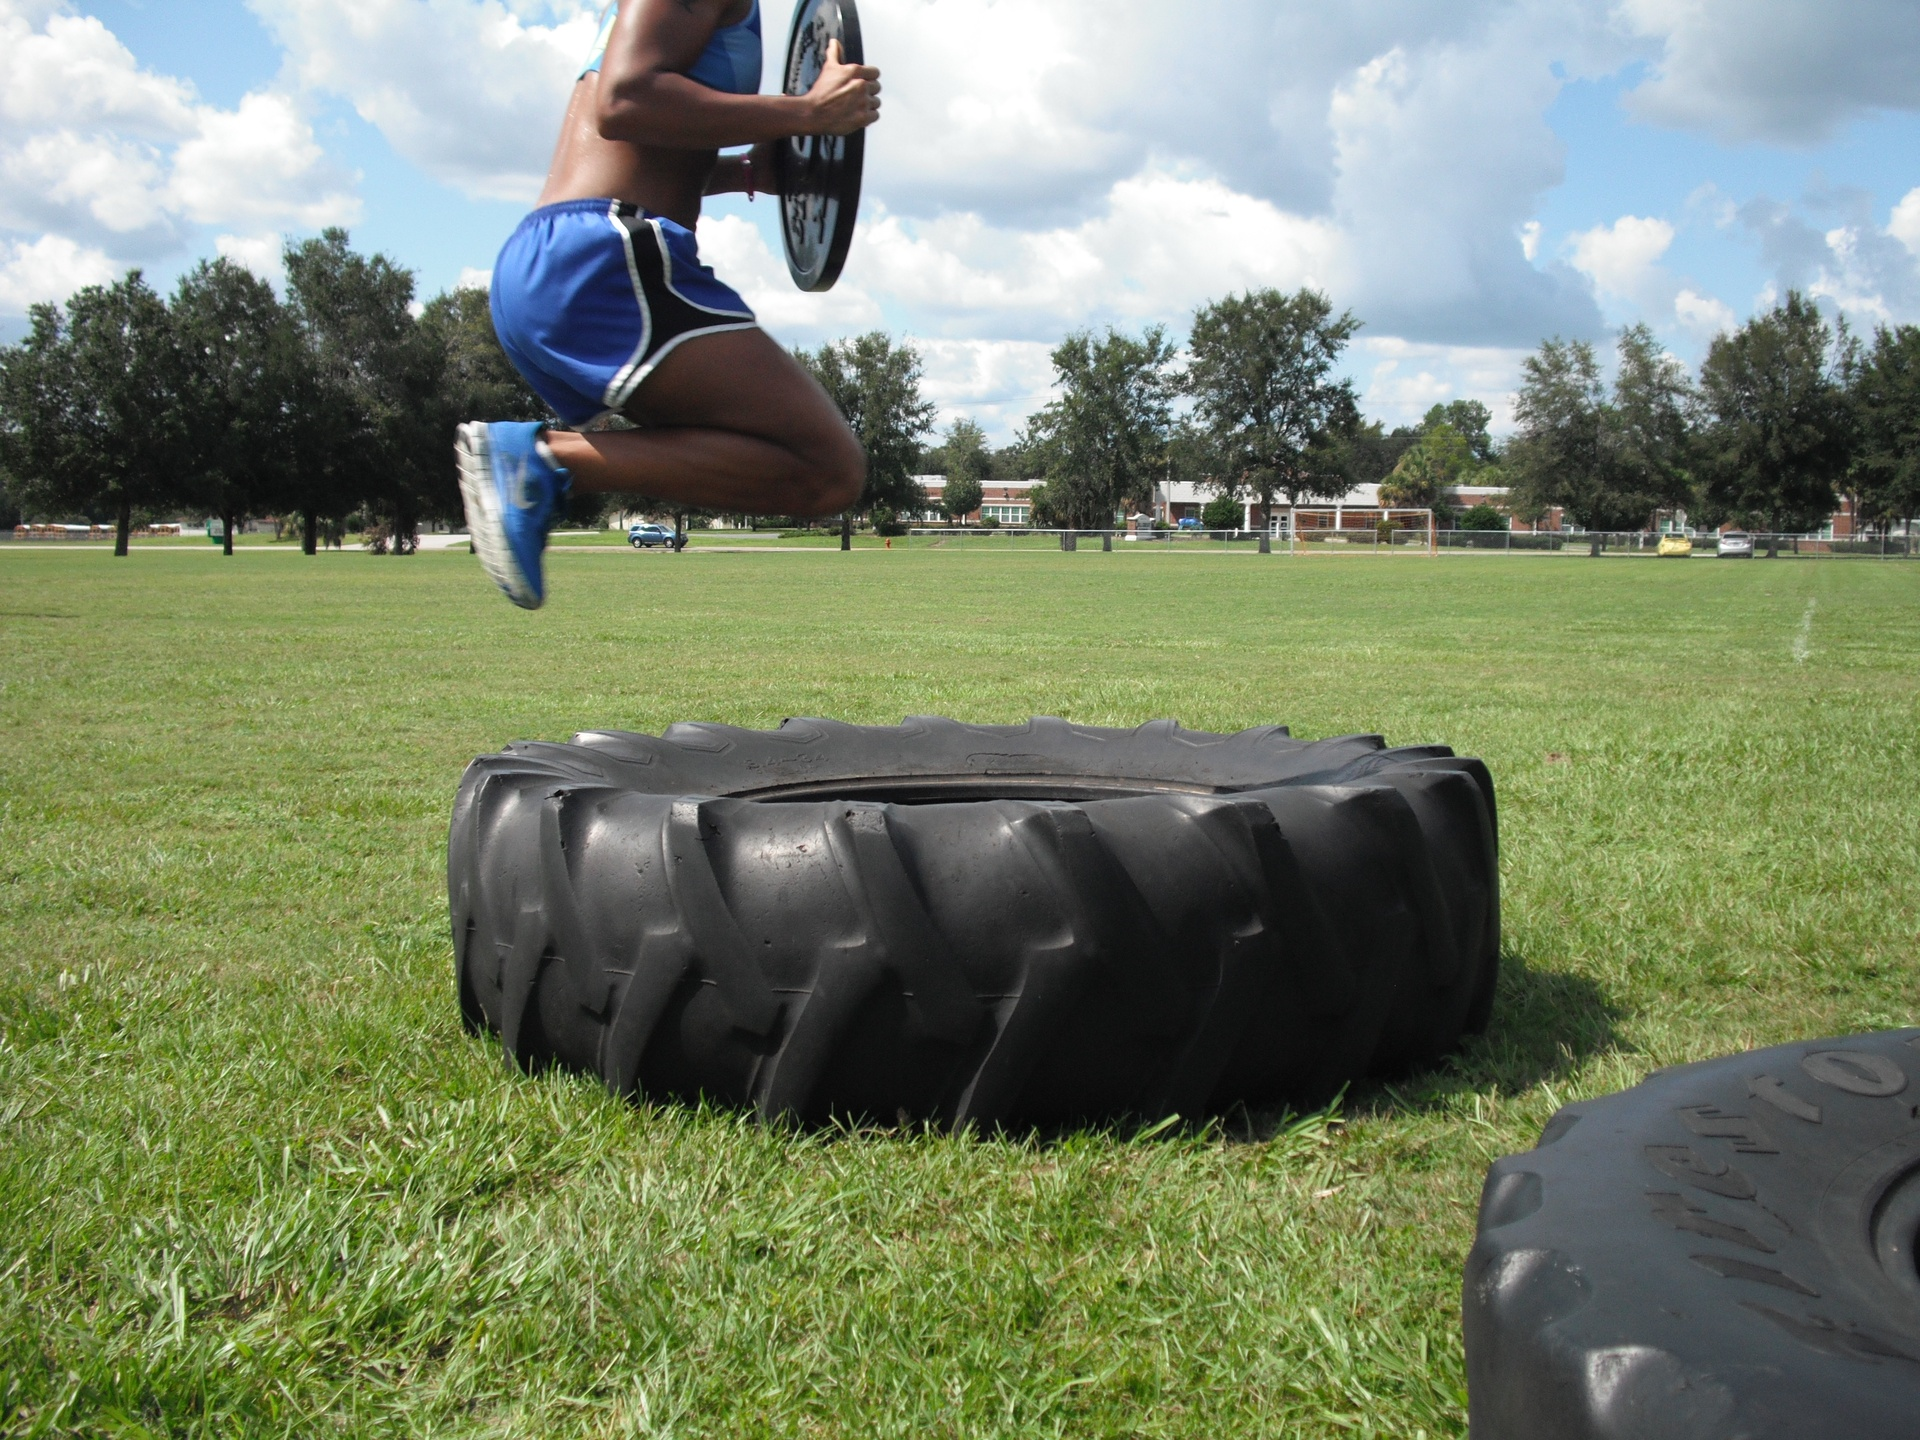 Weighted tire jumps 3